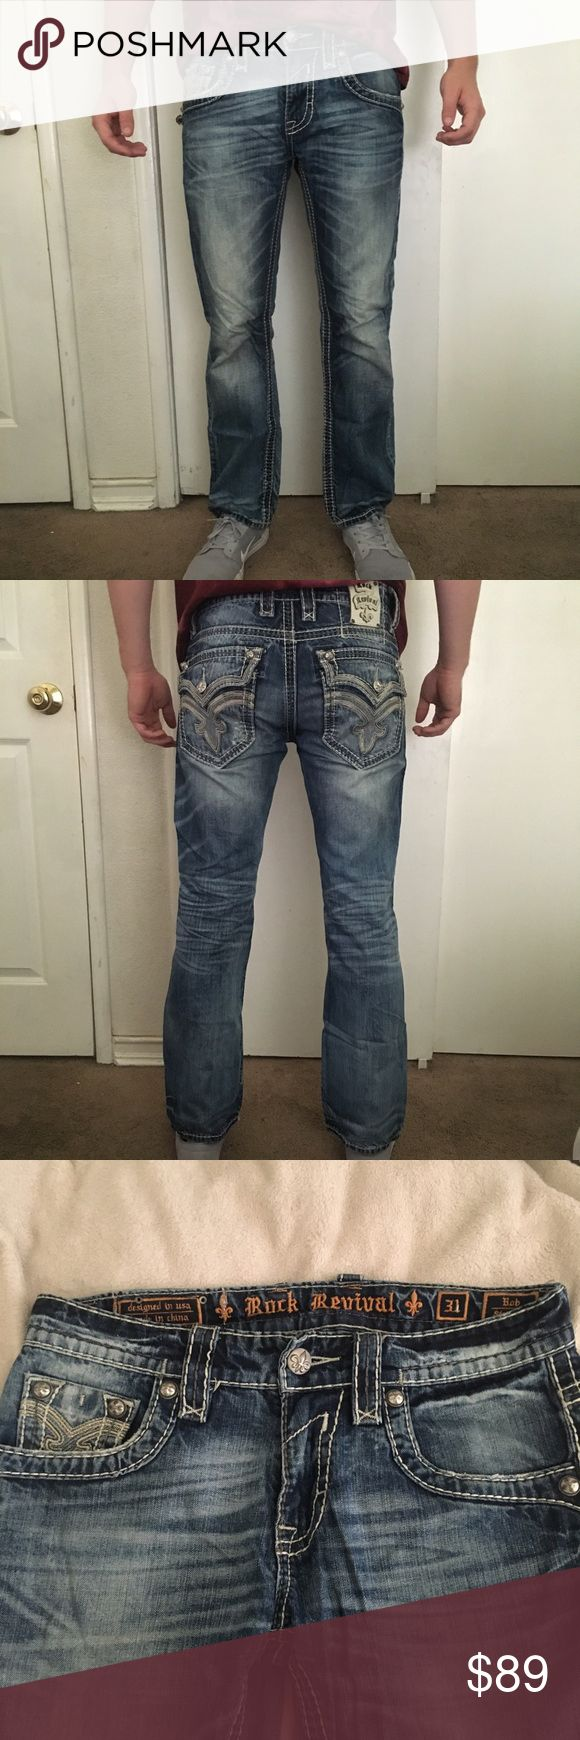 Rock Revival Jeans Gently used Rock Revival jeans, great for casual and semi formal wear Rock Revival Jeans Straight